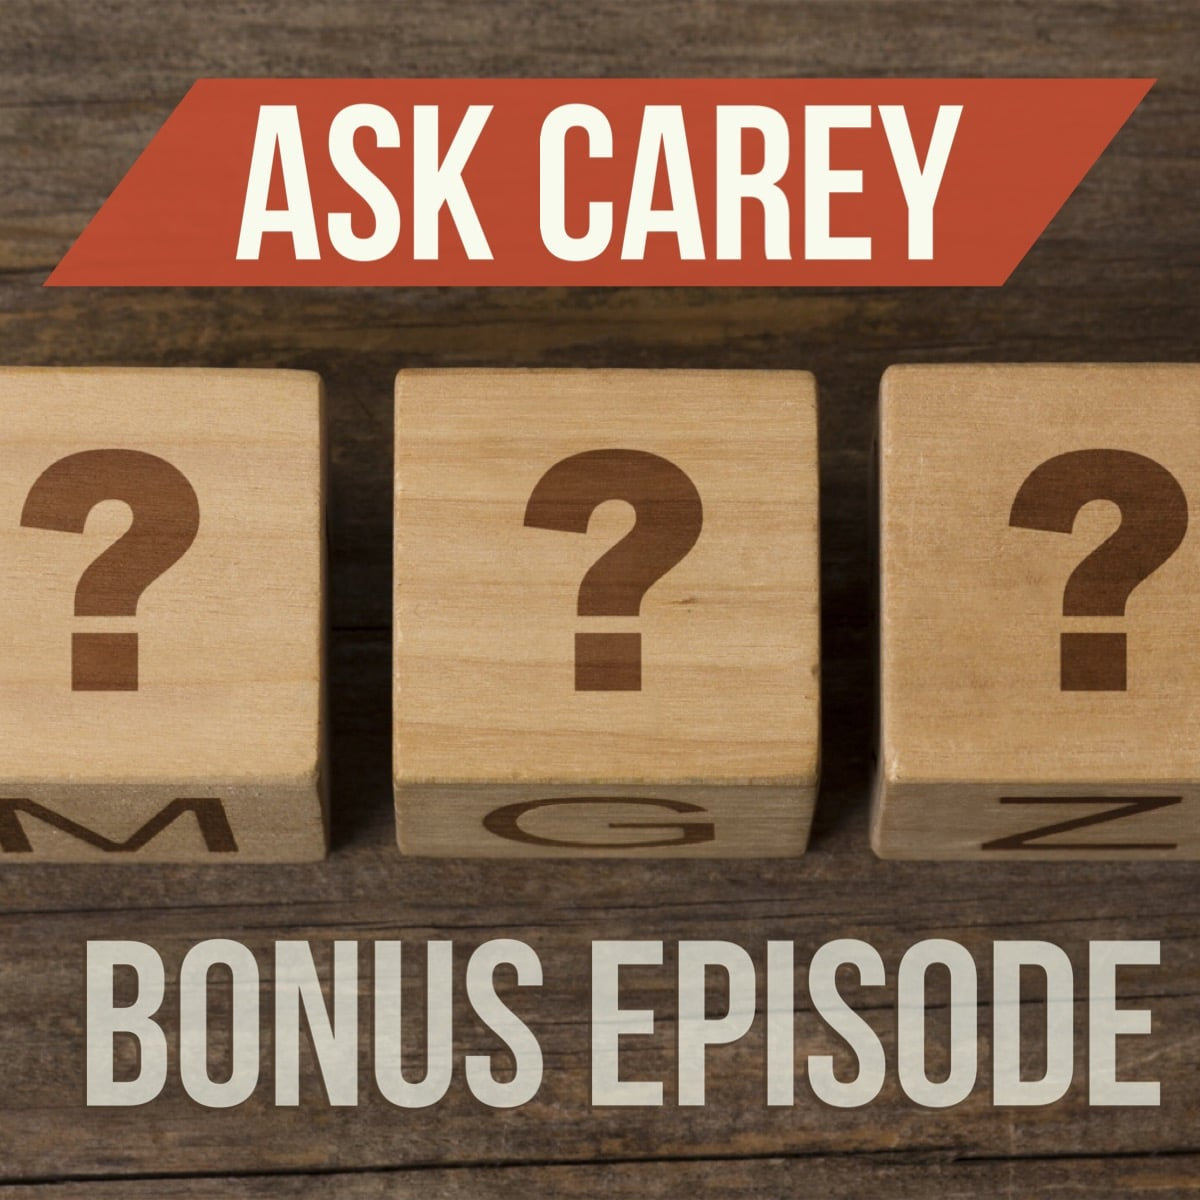 CNLP 202: #AskCarey Your Questions on How to Raise Money When No One Gives, Increasing Your Church's First Time Guest Count, The Art of Question Asking, and How to Improve Your Side Hustle